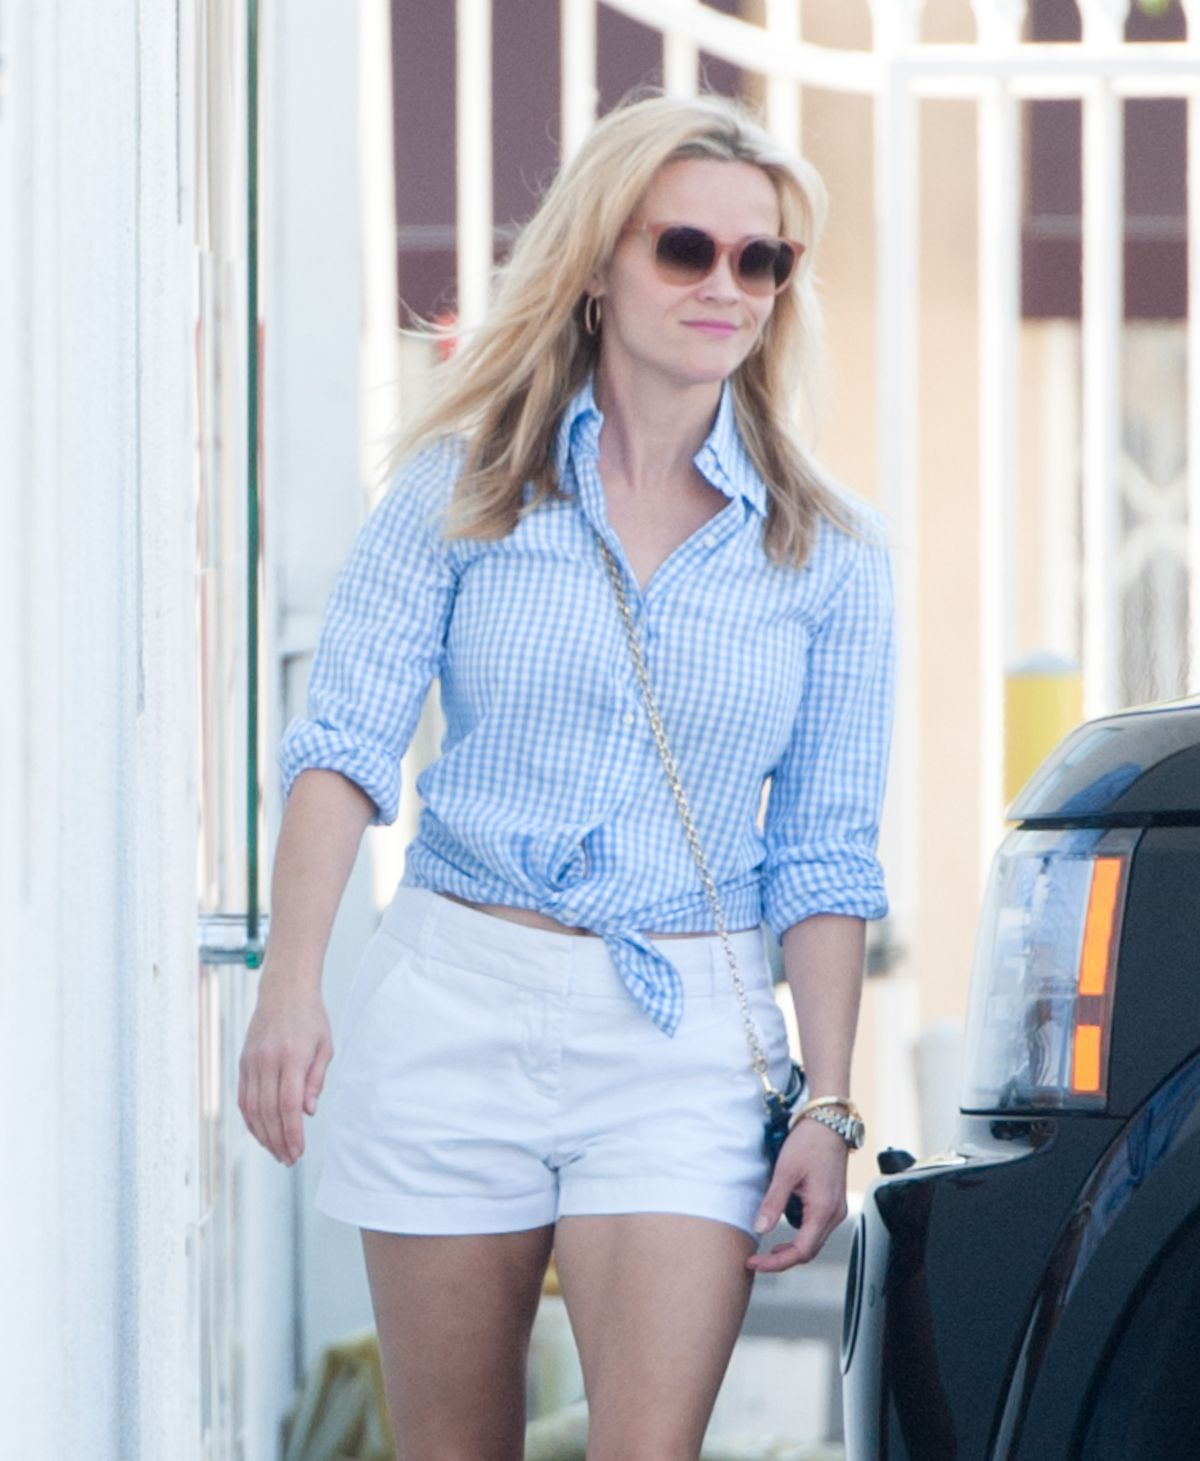 REESE WITHERSPOON Out and About in Los Angeles 06/20/2015